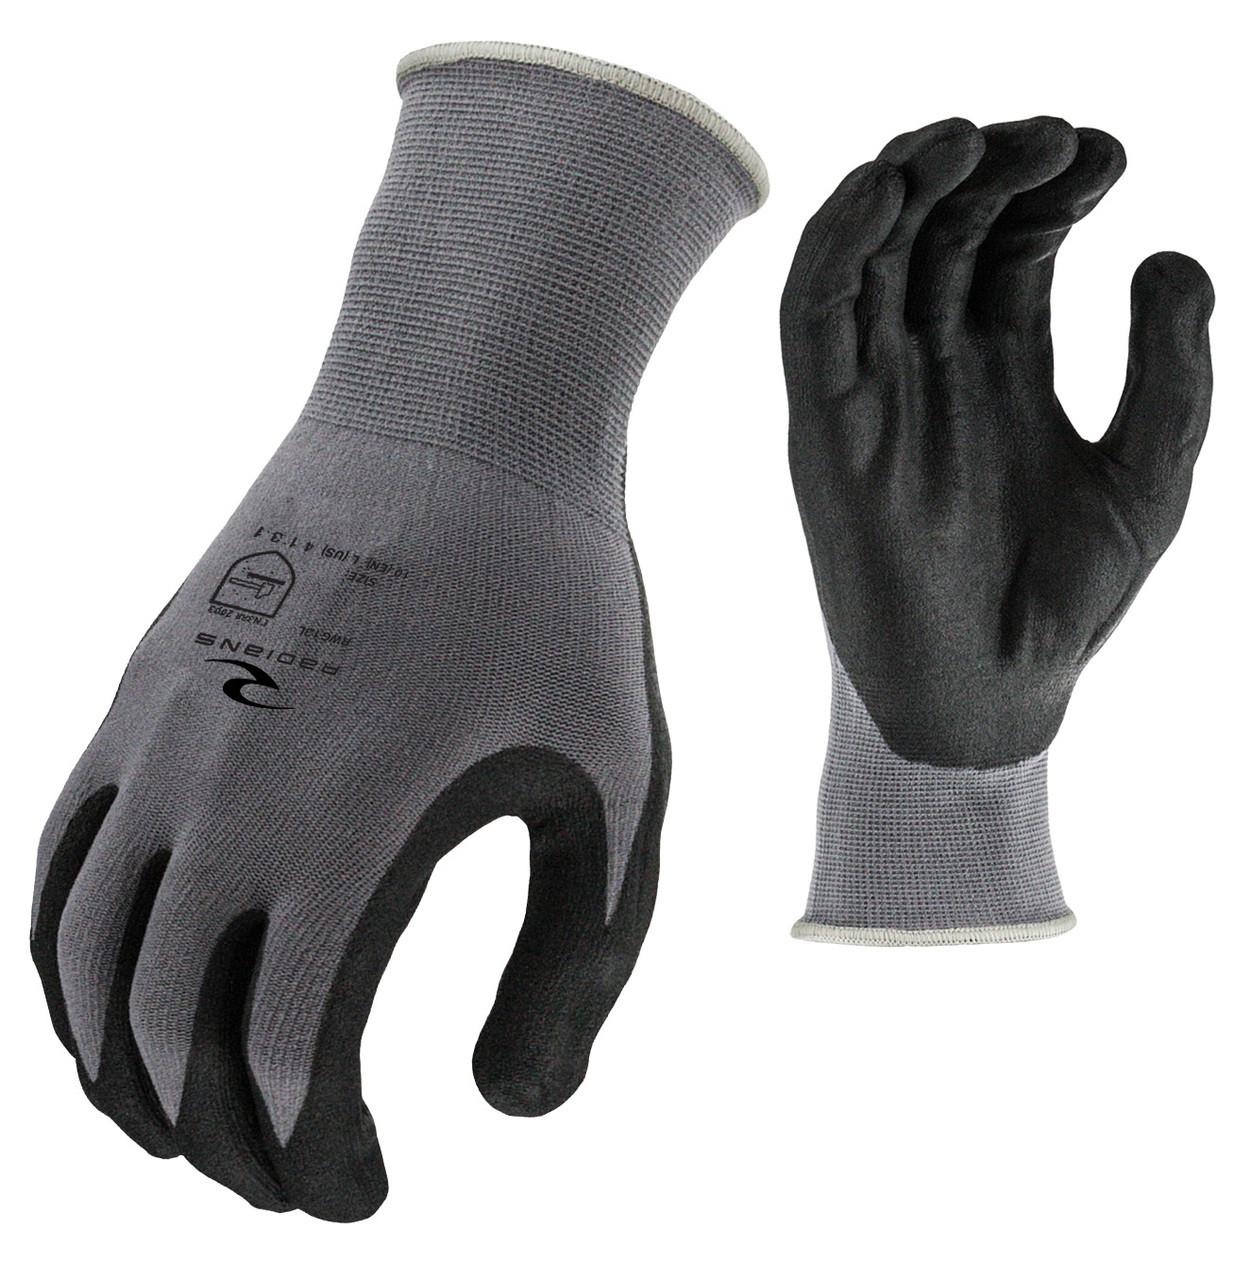 Foam Nitrile Gripper Glove